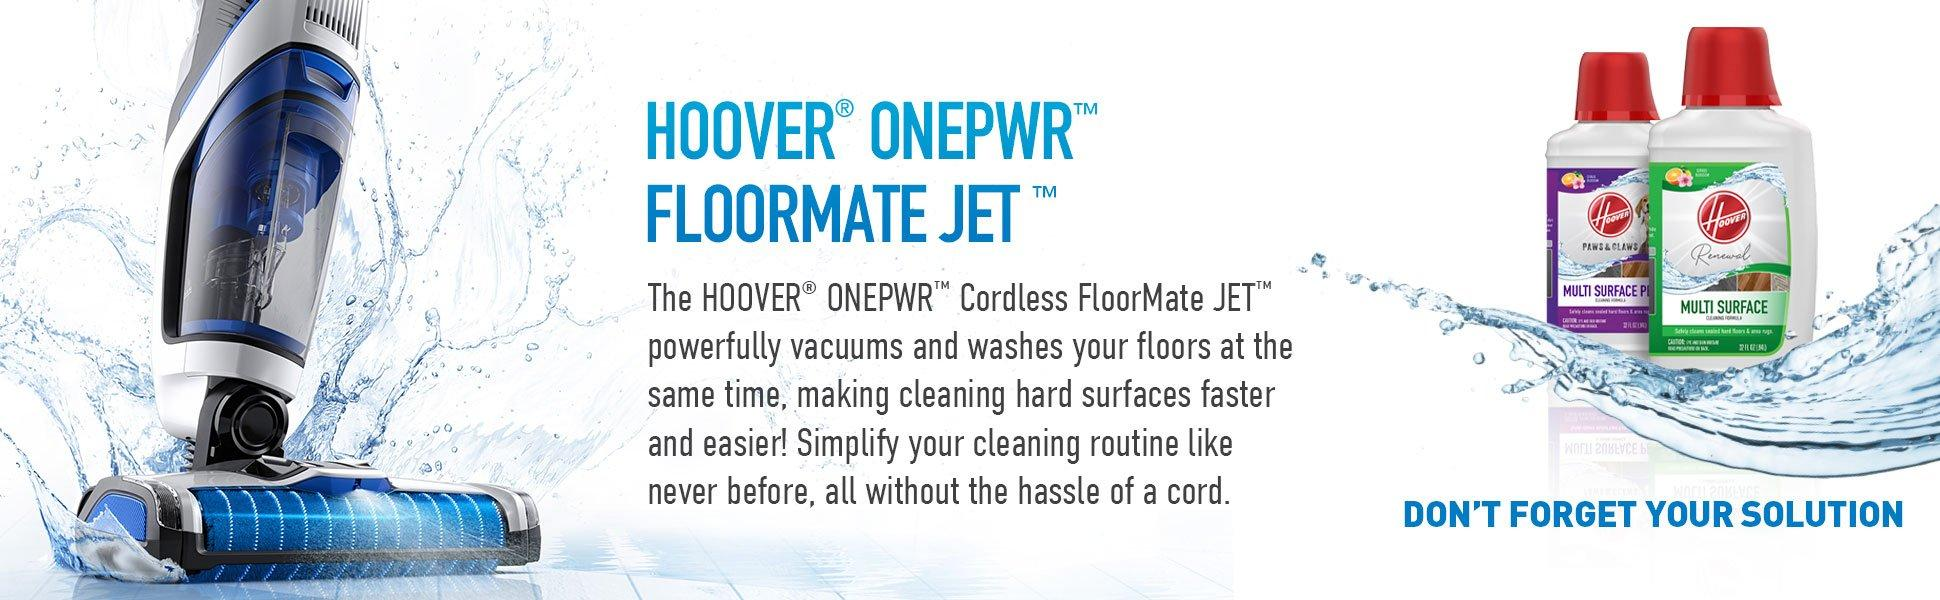 ONEPWR FloorMate JET